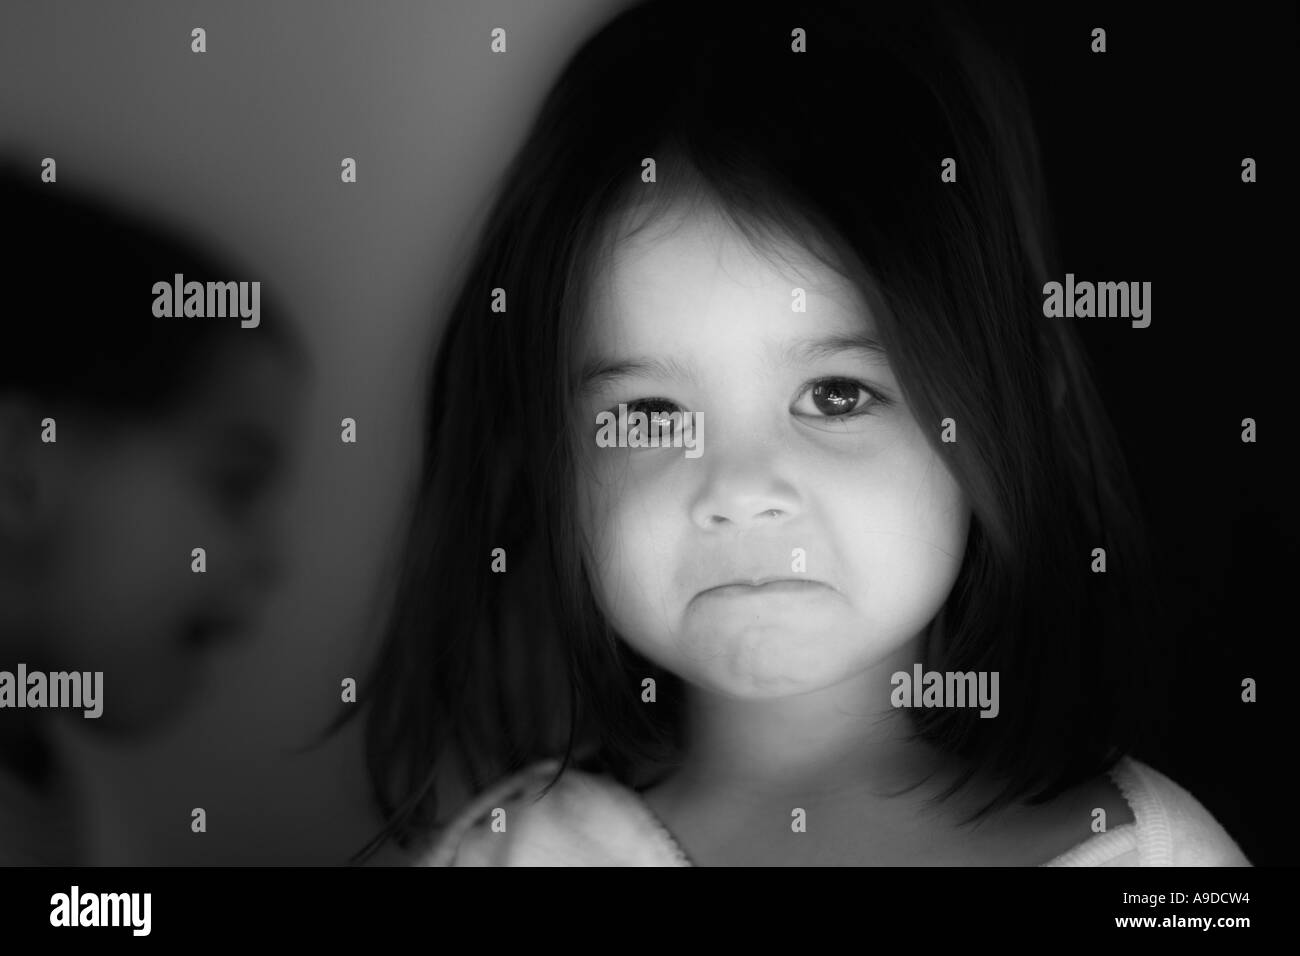 Girl with brother in the background shadows - Stock Image